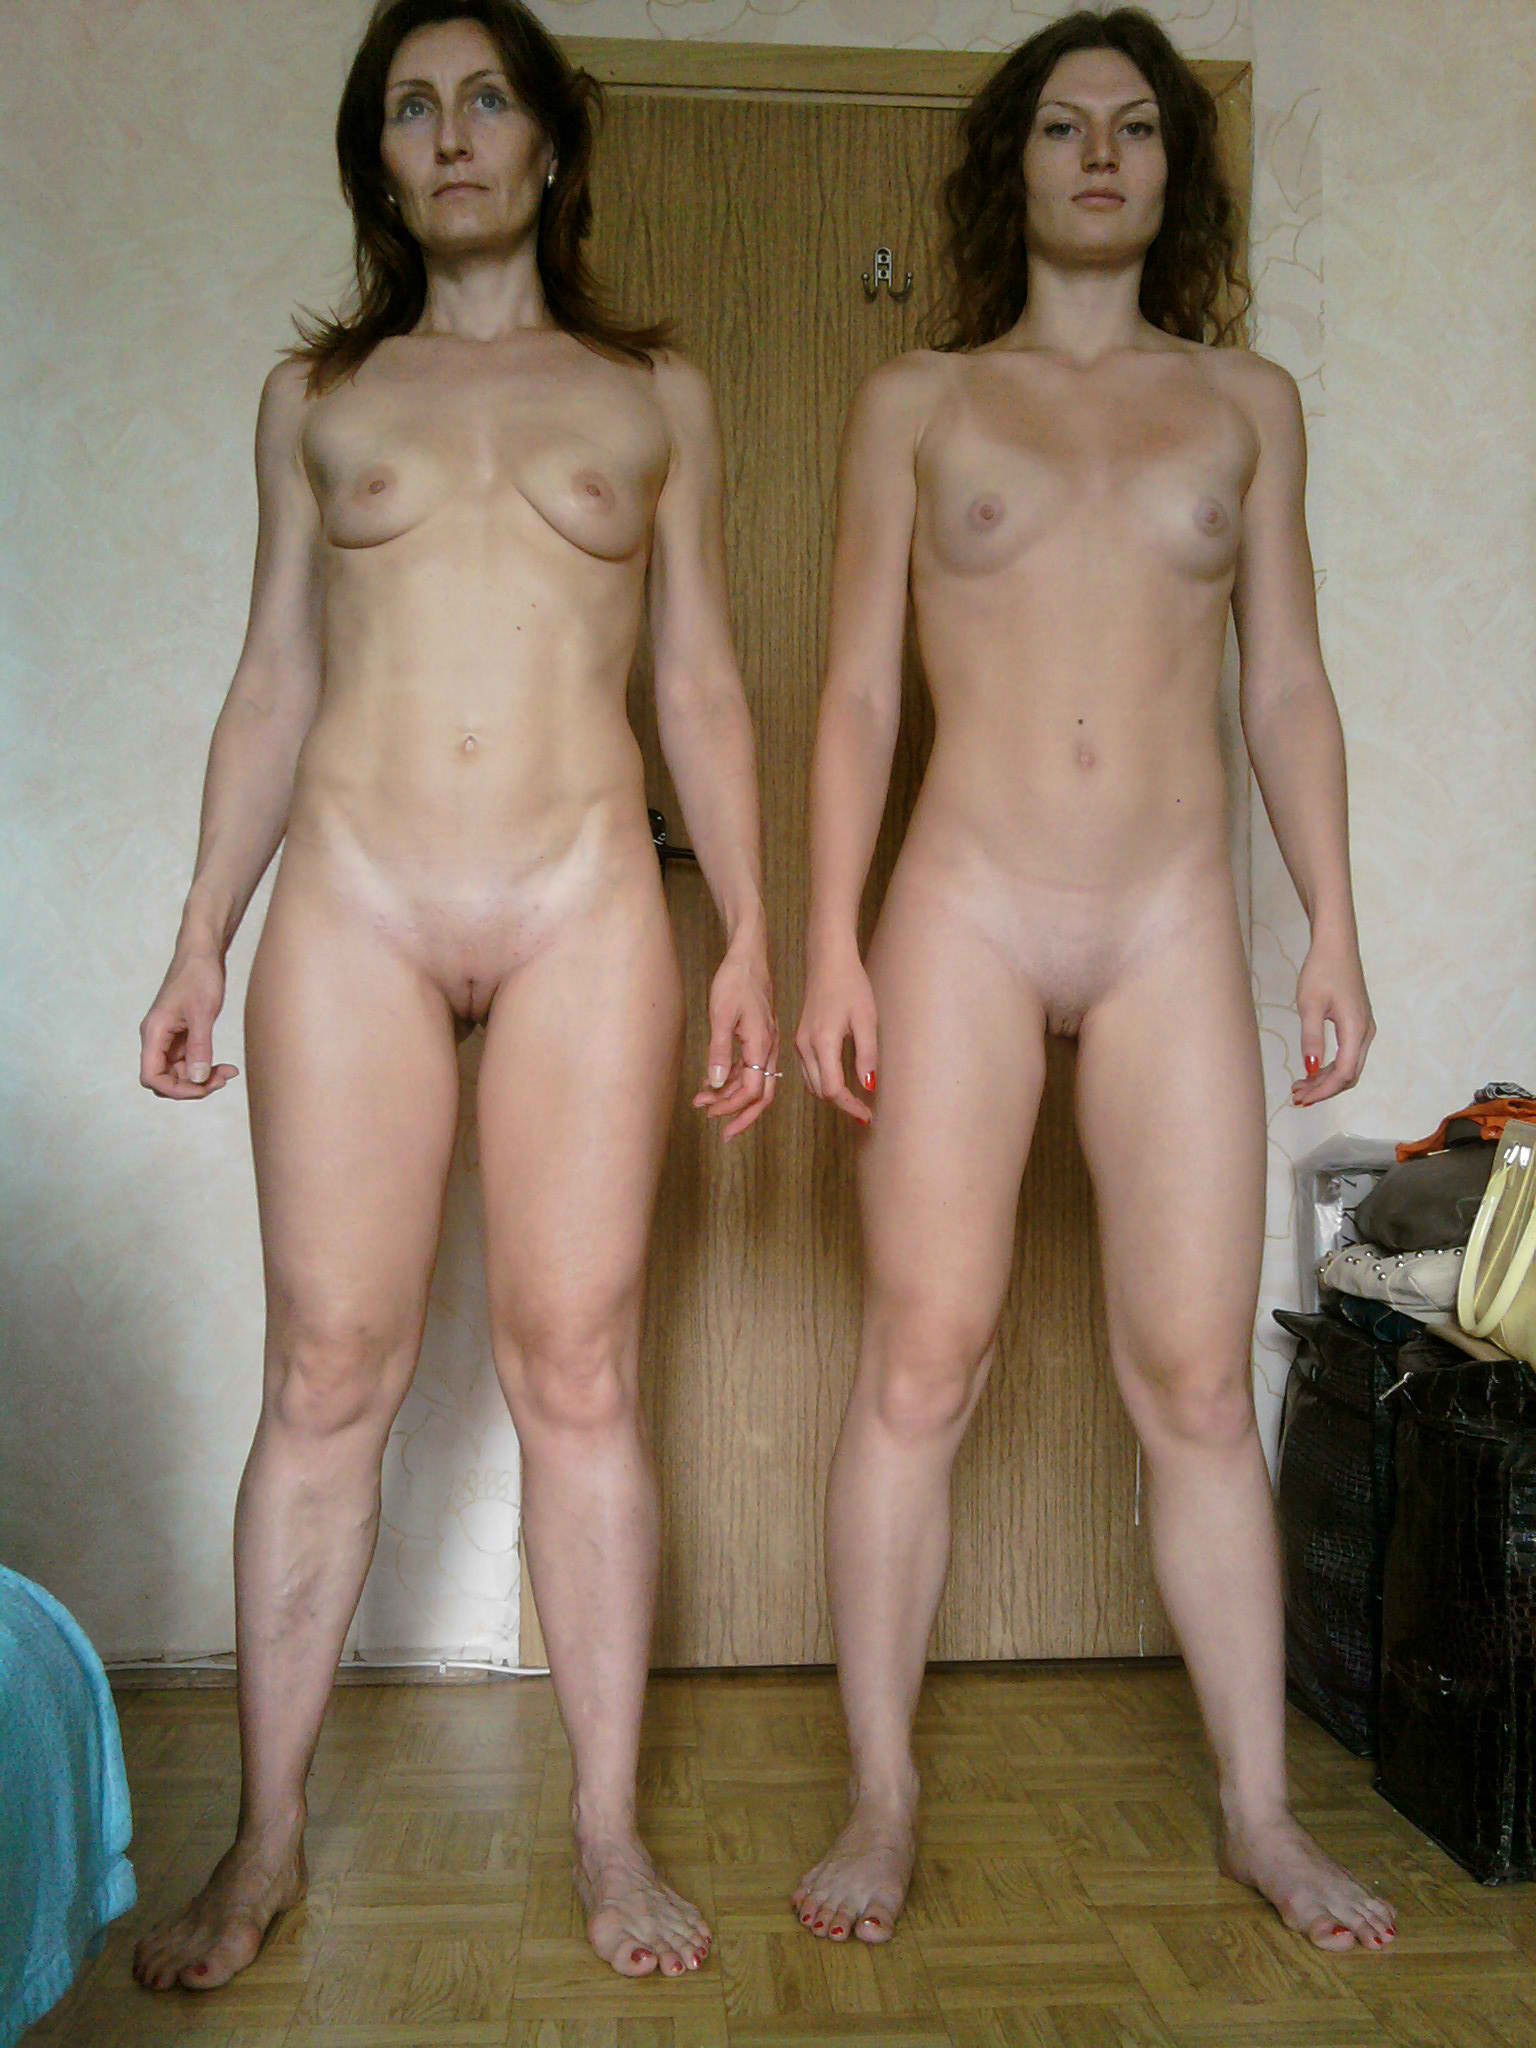 Naked mum and daughter